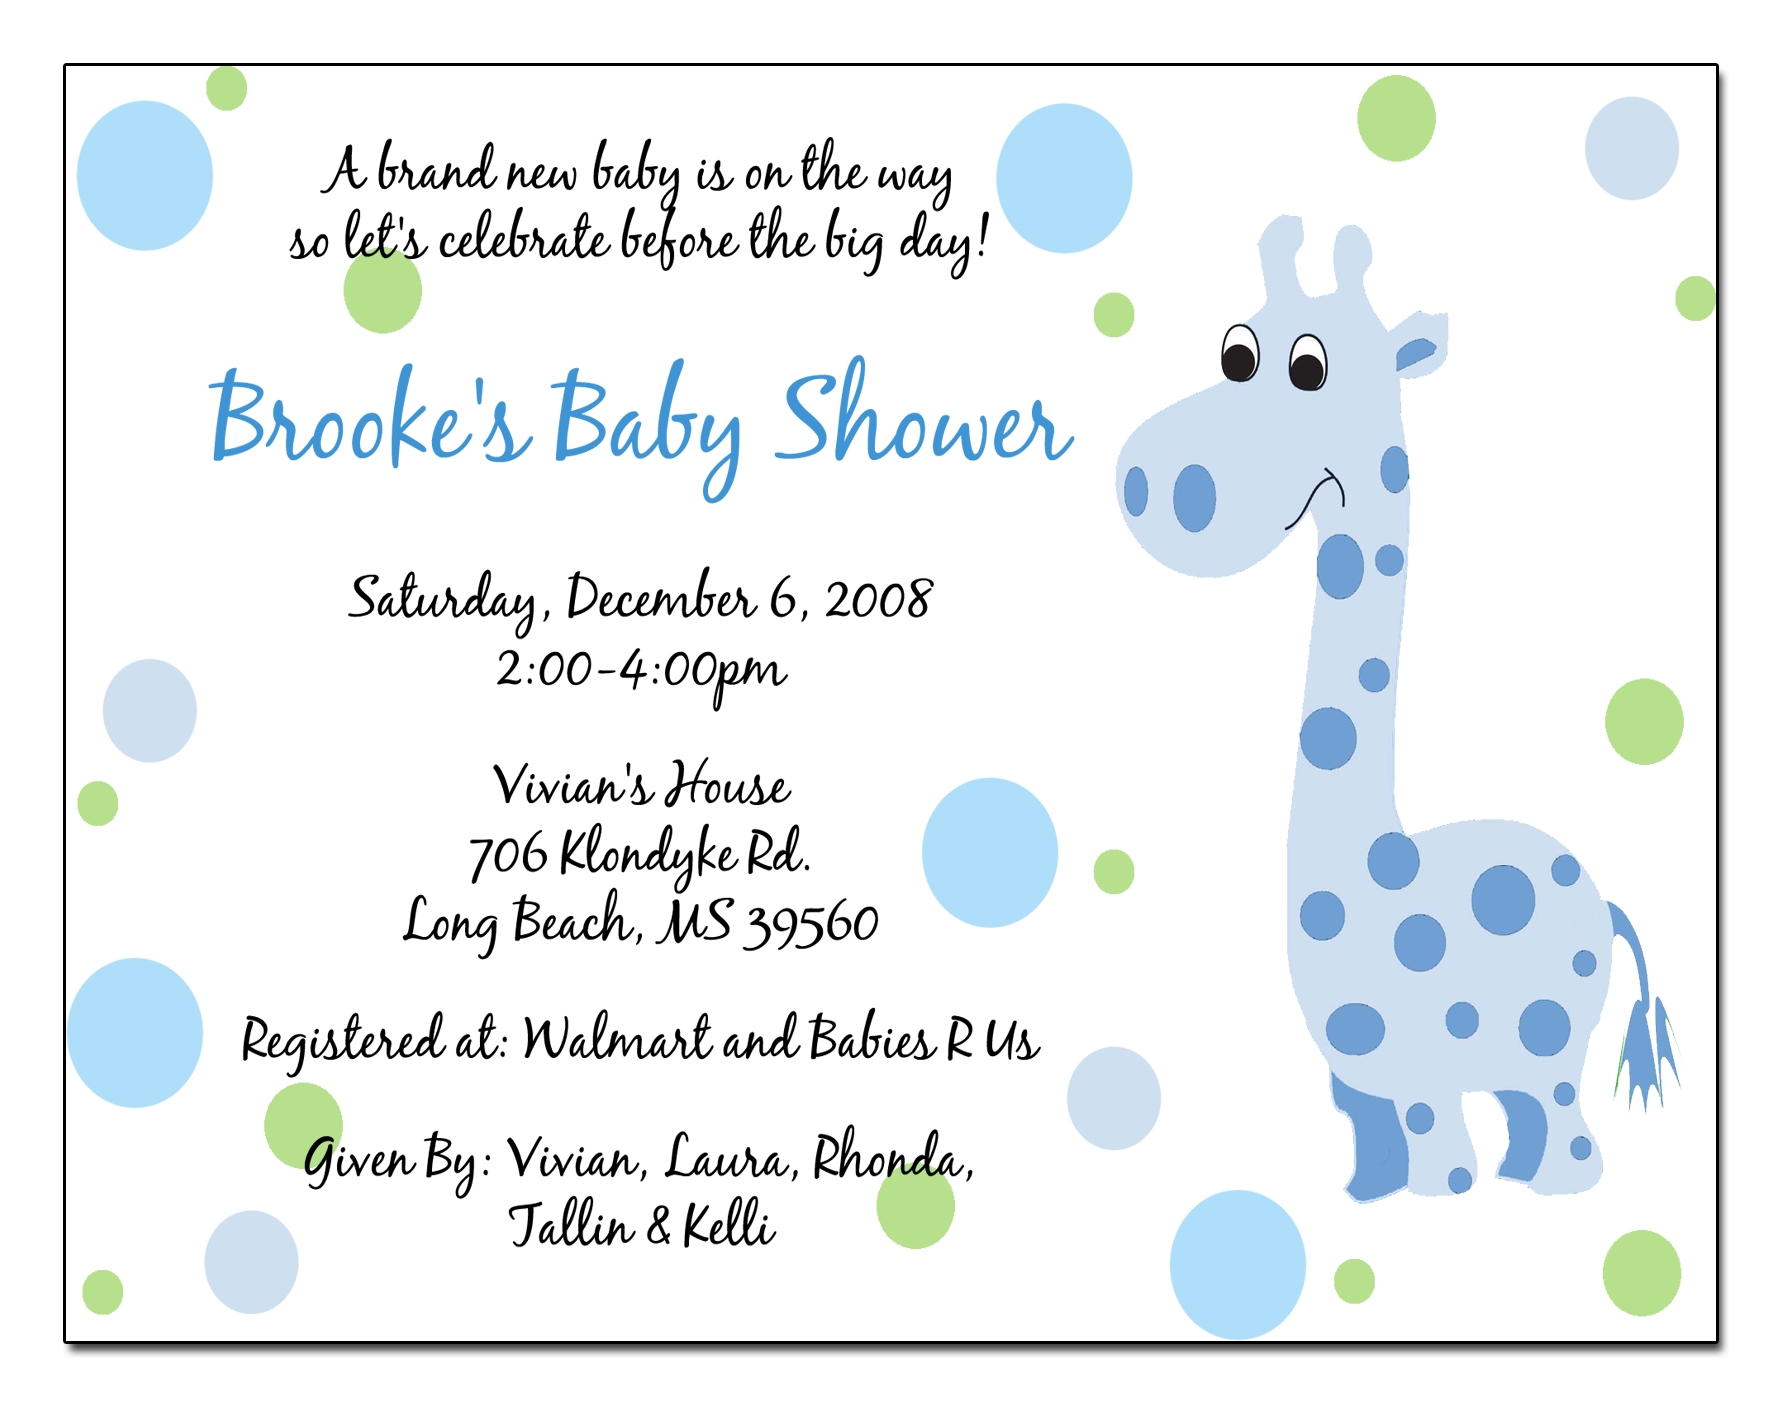 10 Lovable Boy Baby Shower Invitations Wording Ideas words for baby shower invitation tire driveeasy co 2021